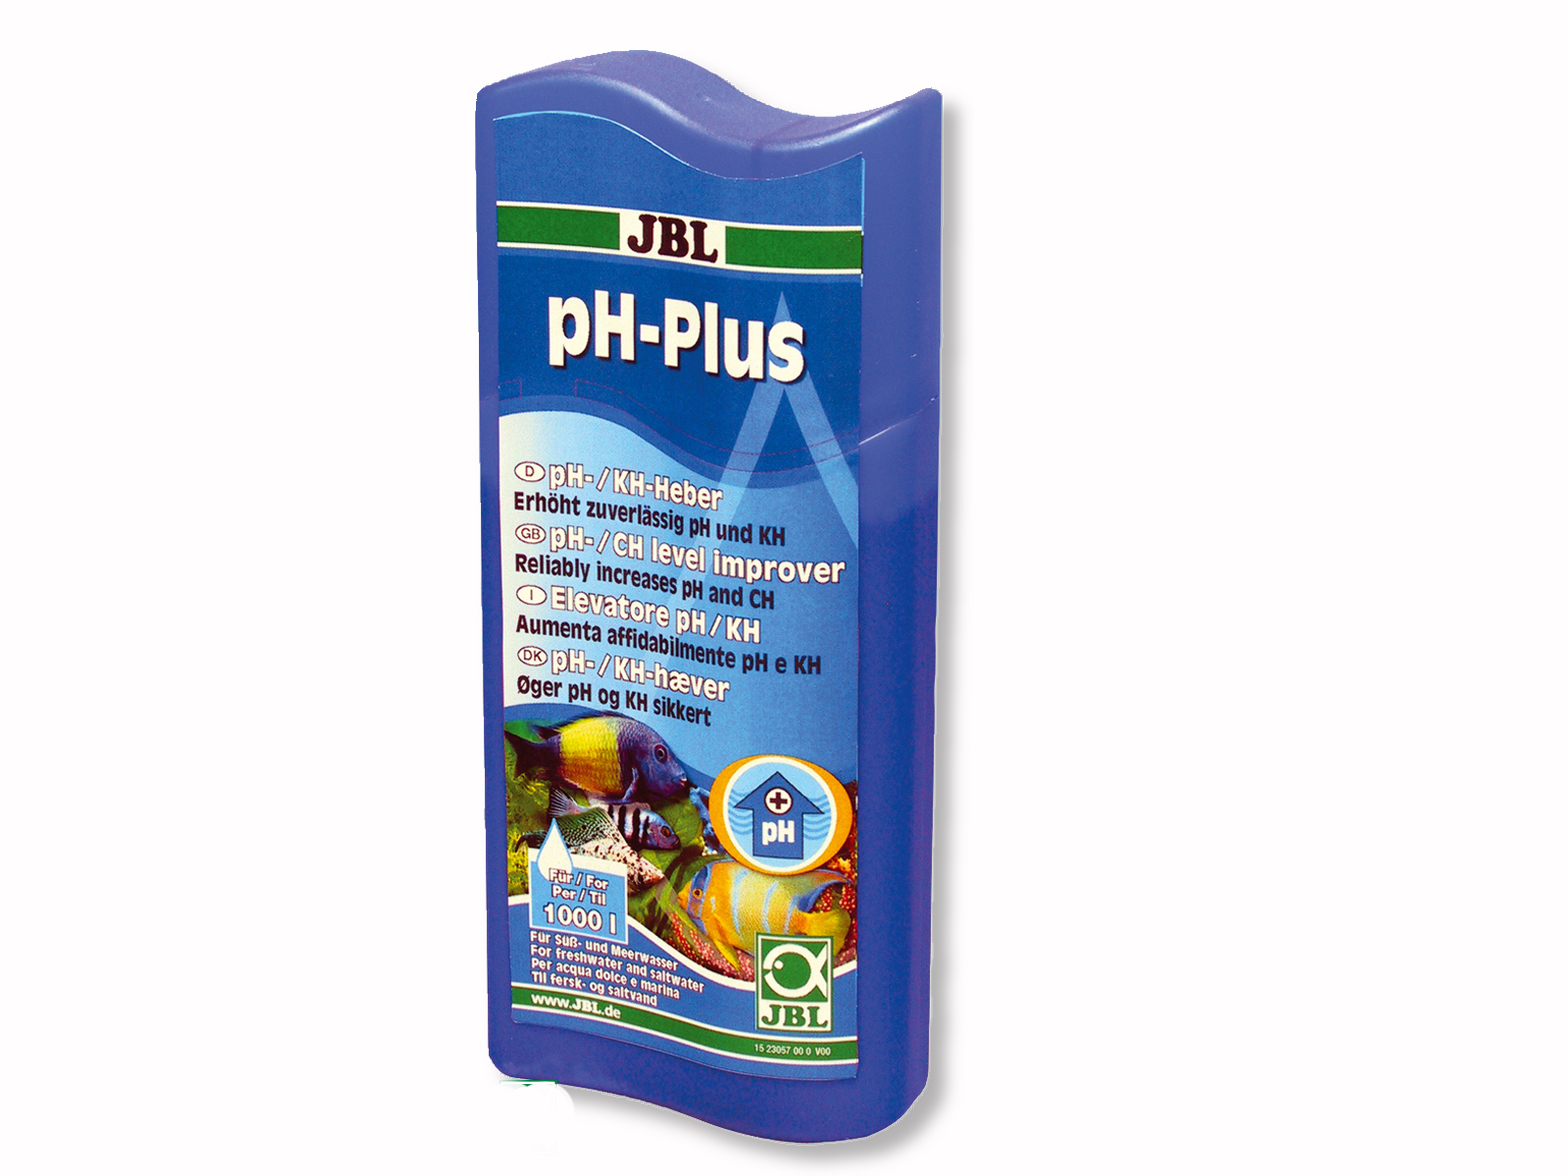 JBL pH-plus (Aqualkal) - JBL pH-plus 100 ml